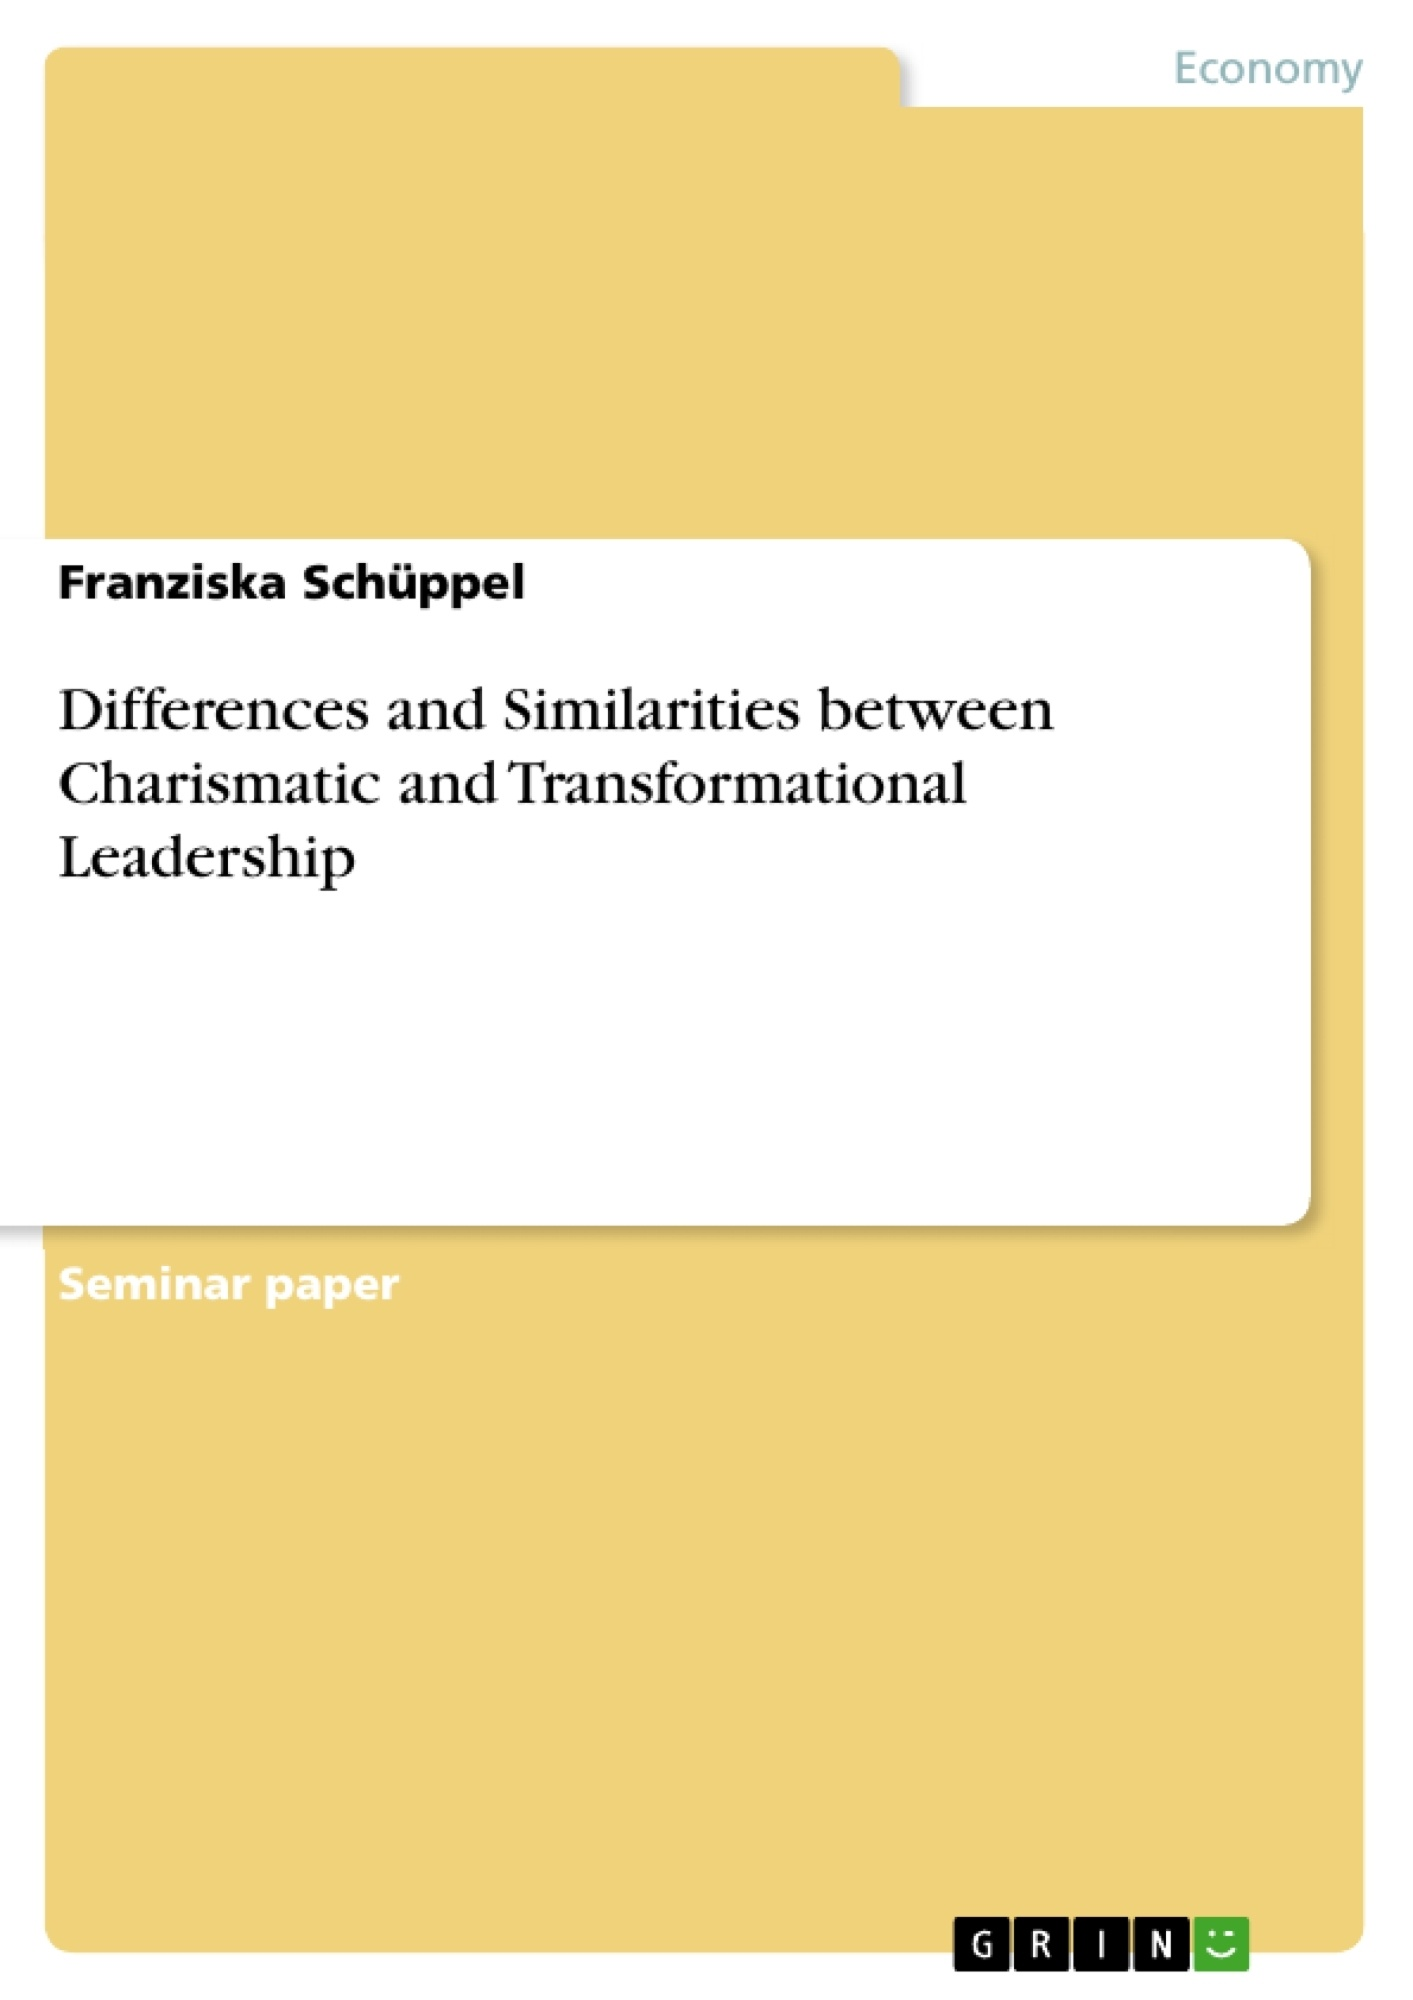 Title: Differences and Similarities between Charismatic and Transformational Leadership